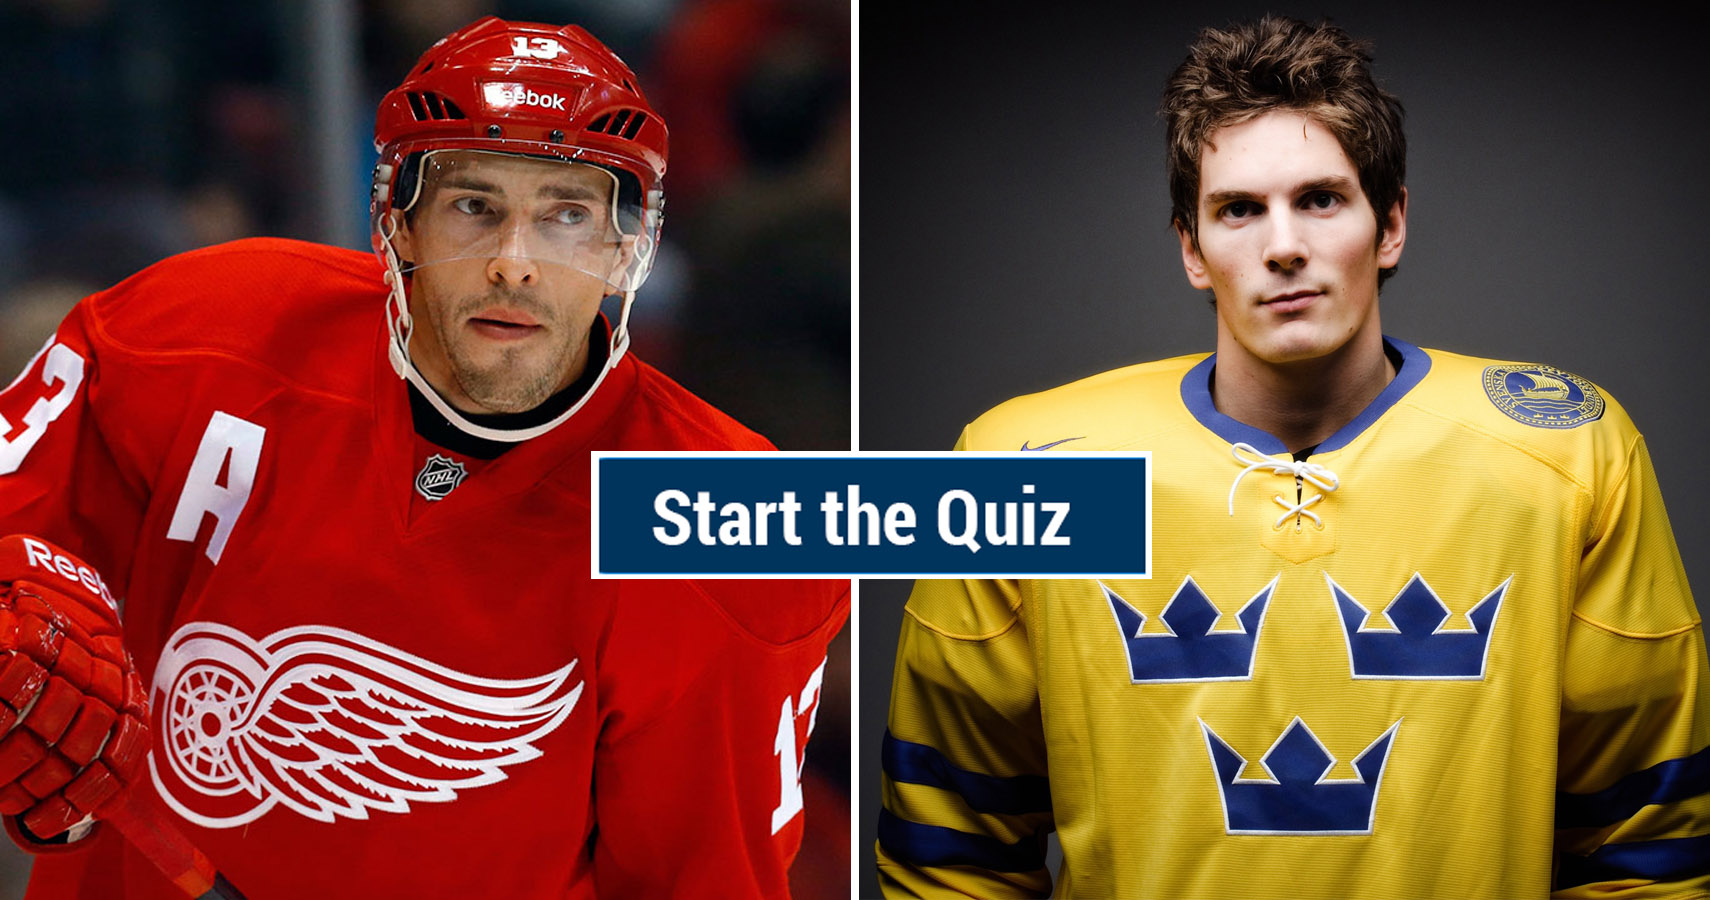 can you the team this hockey player is currently playing can you the team this hockey player is currently playing thesportster